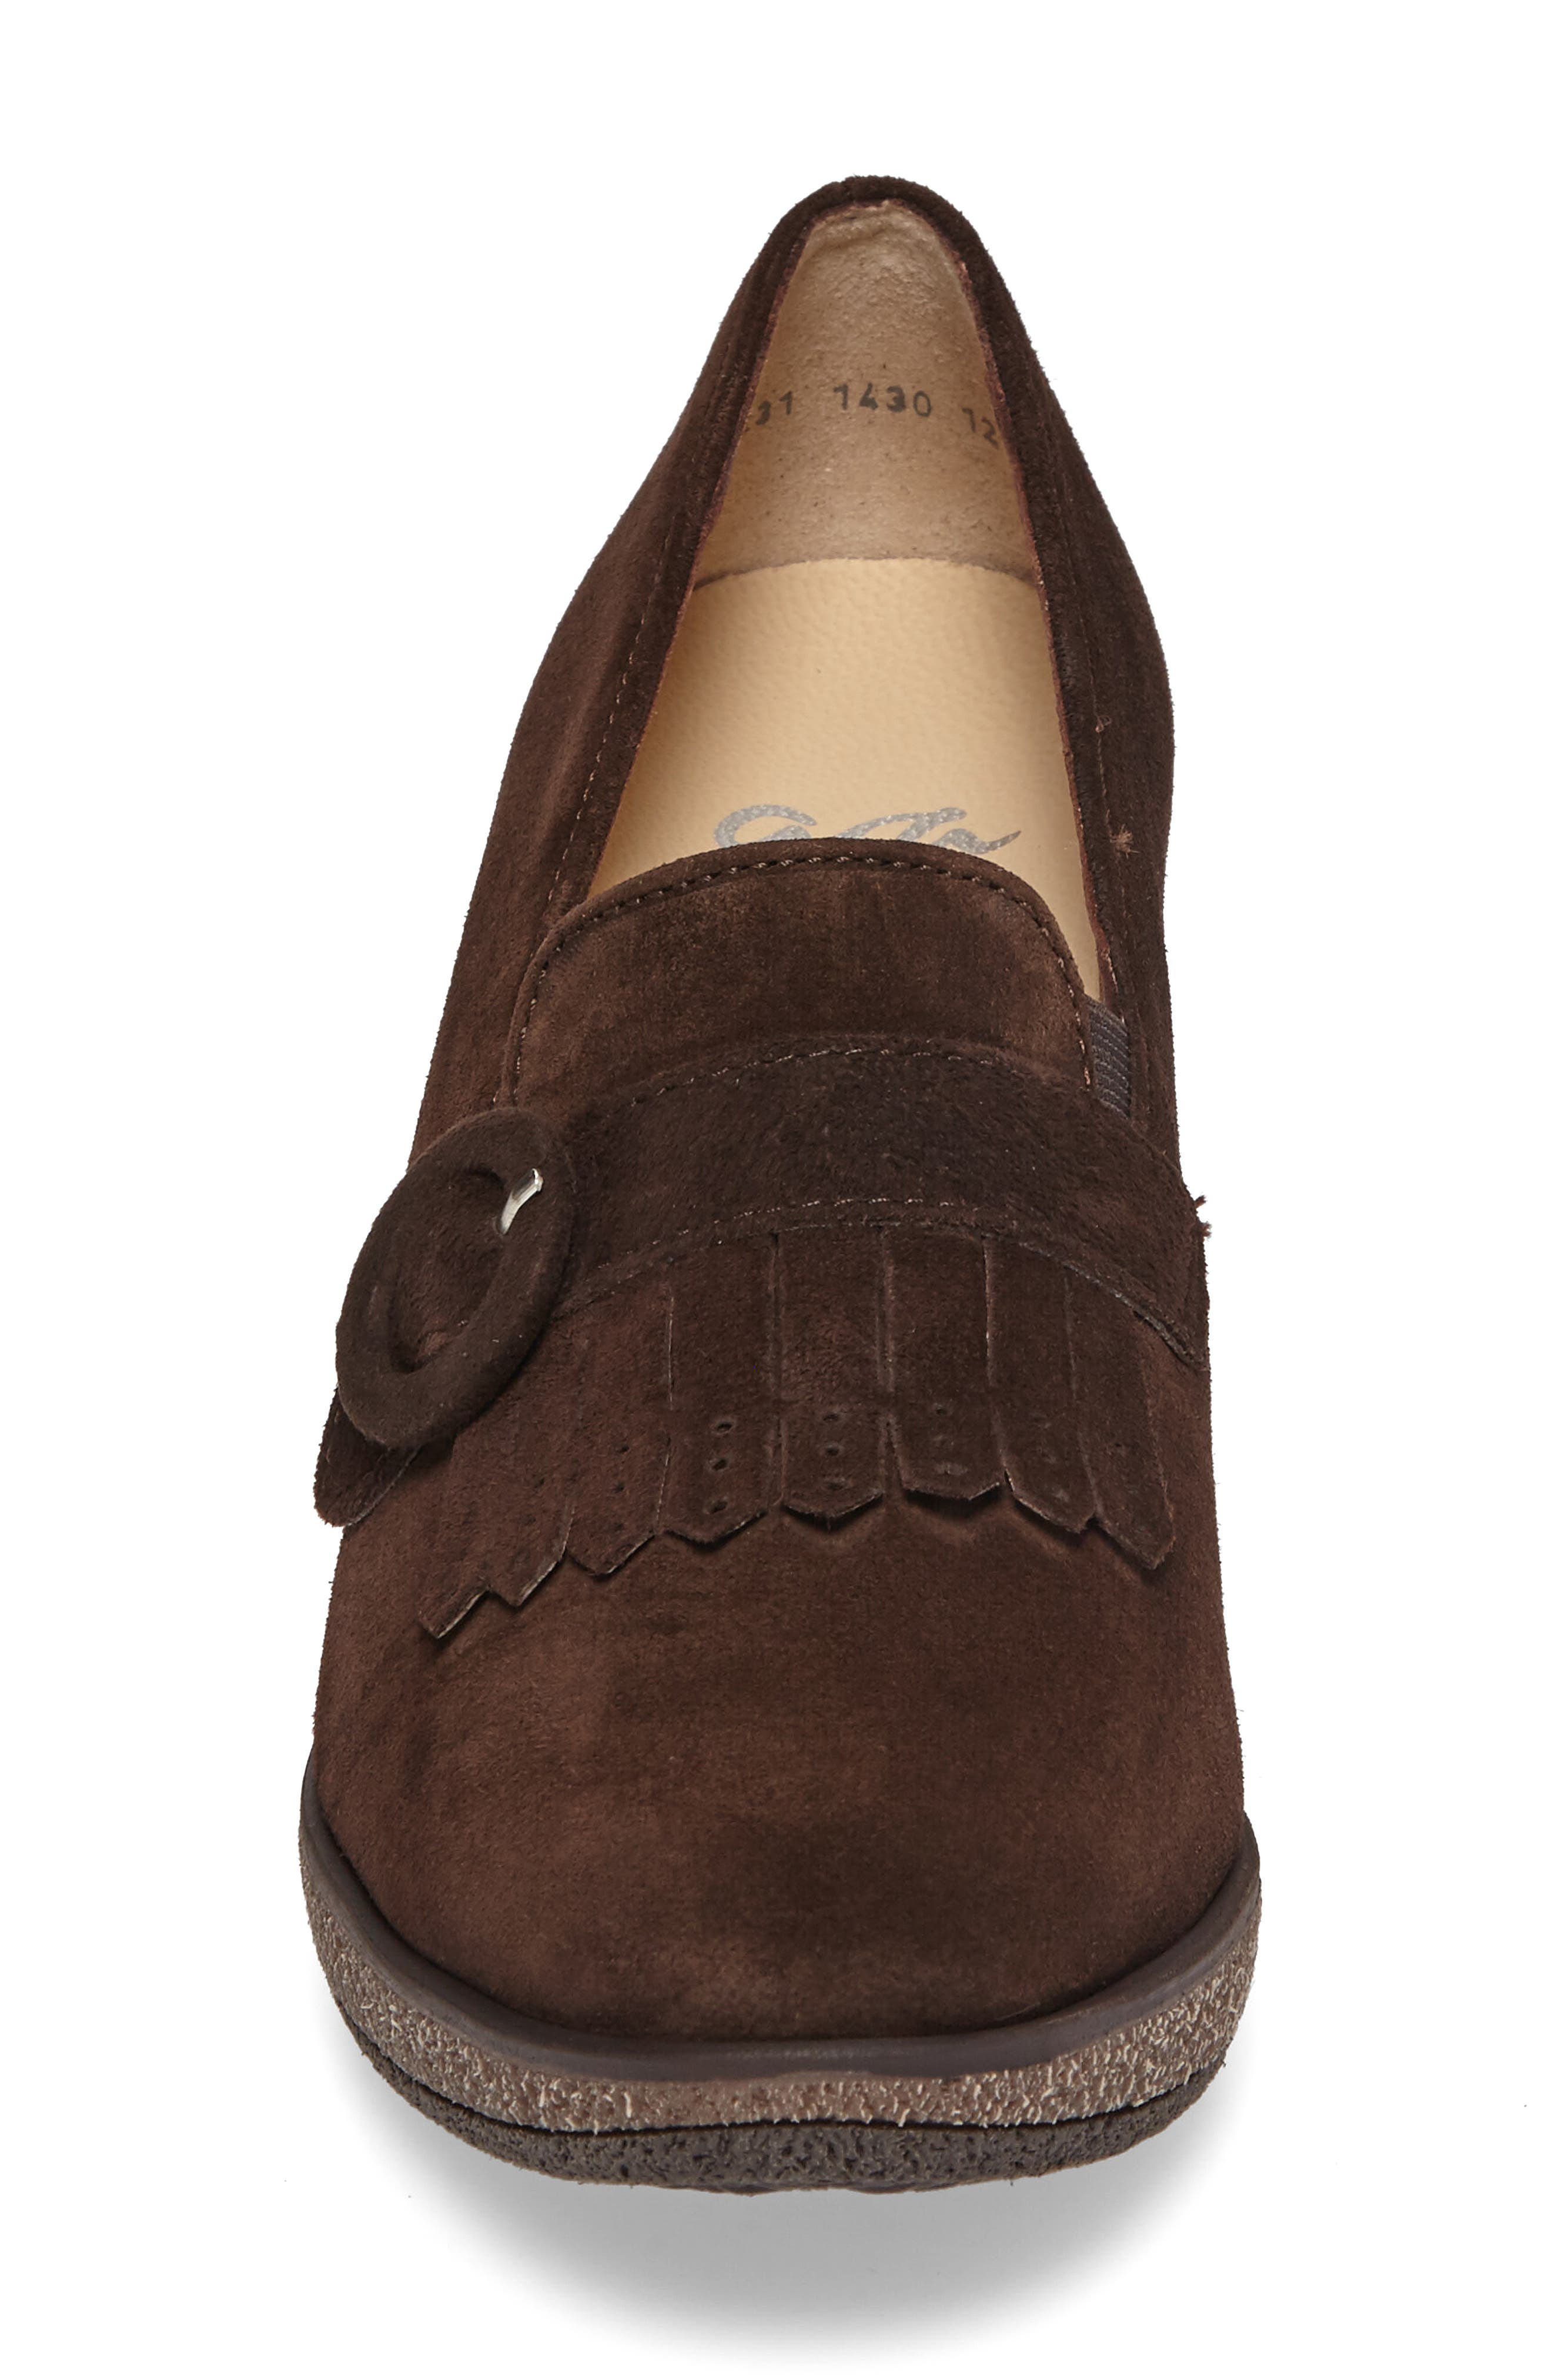 Becky Loafer Pump,                             Alternate thumbnail 4, color,                             BROWN SUEDE